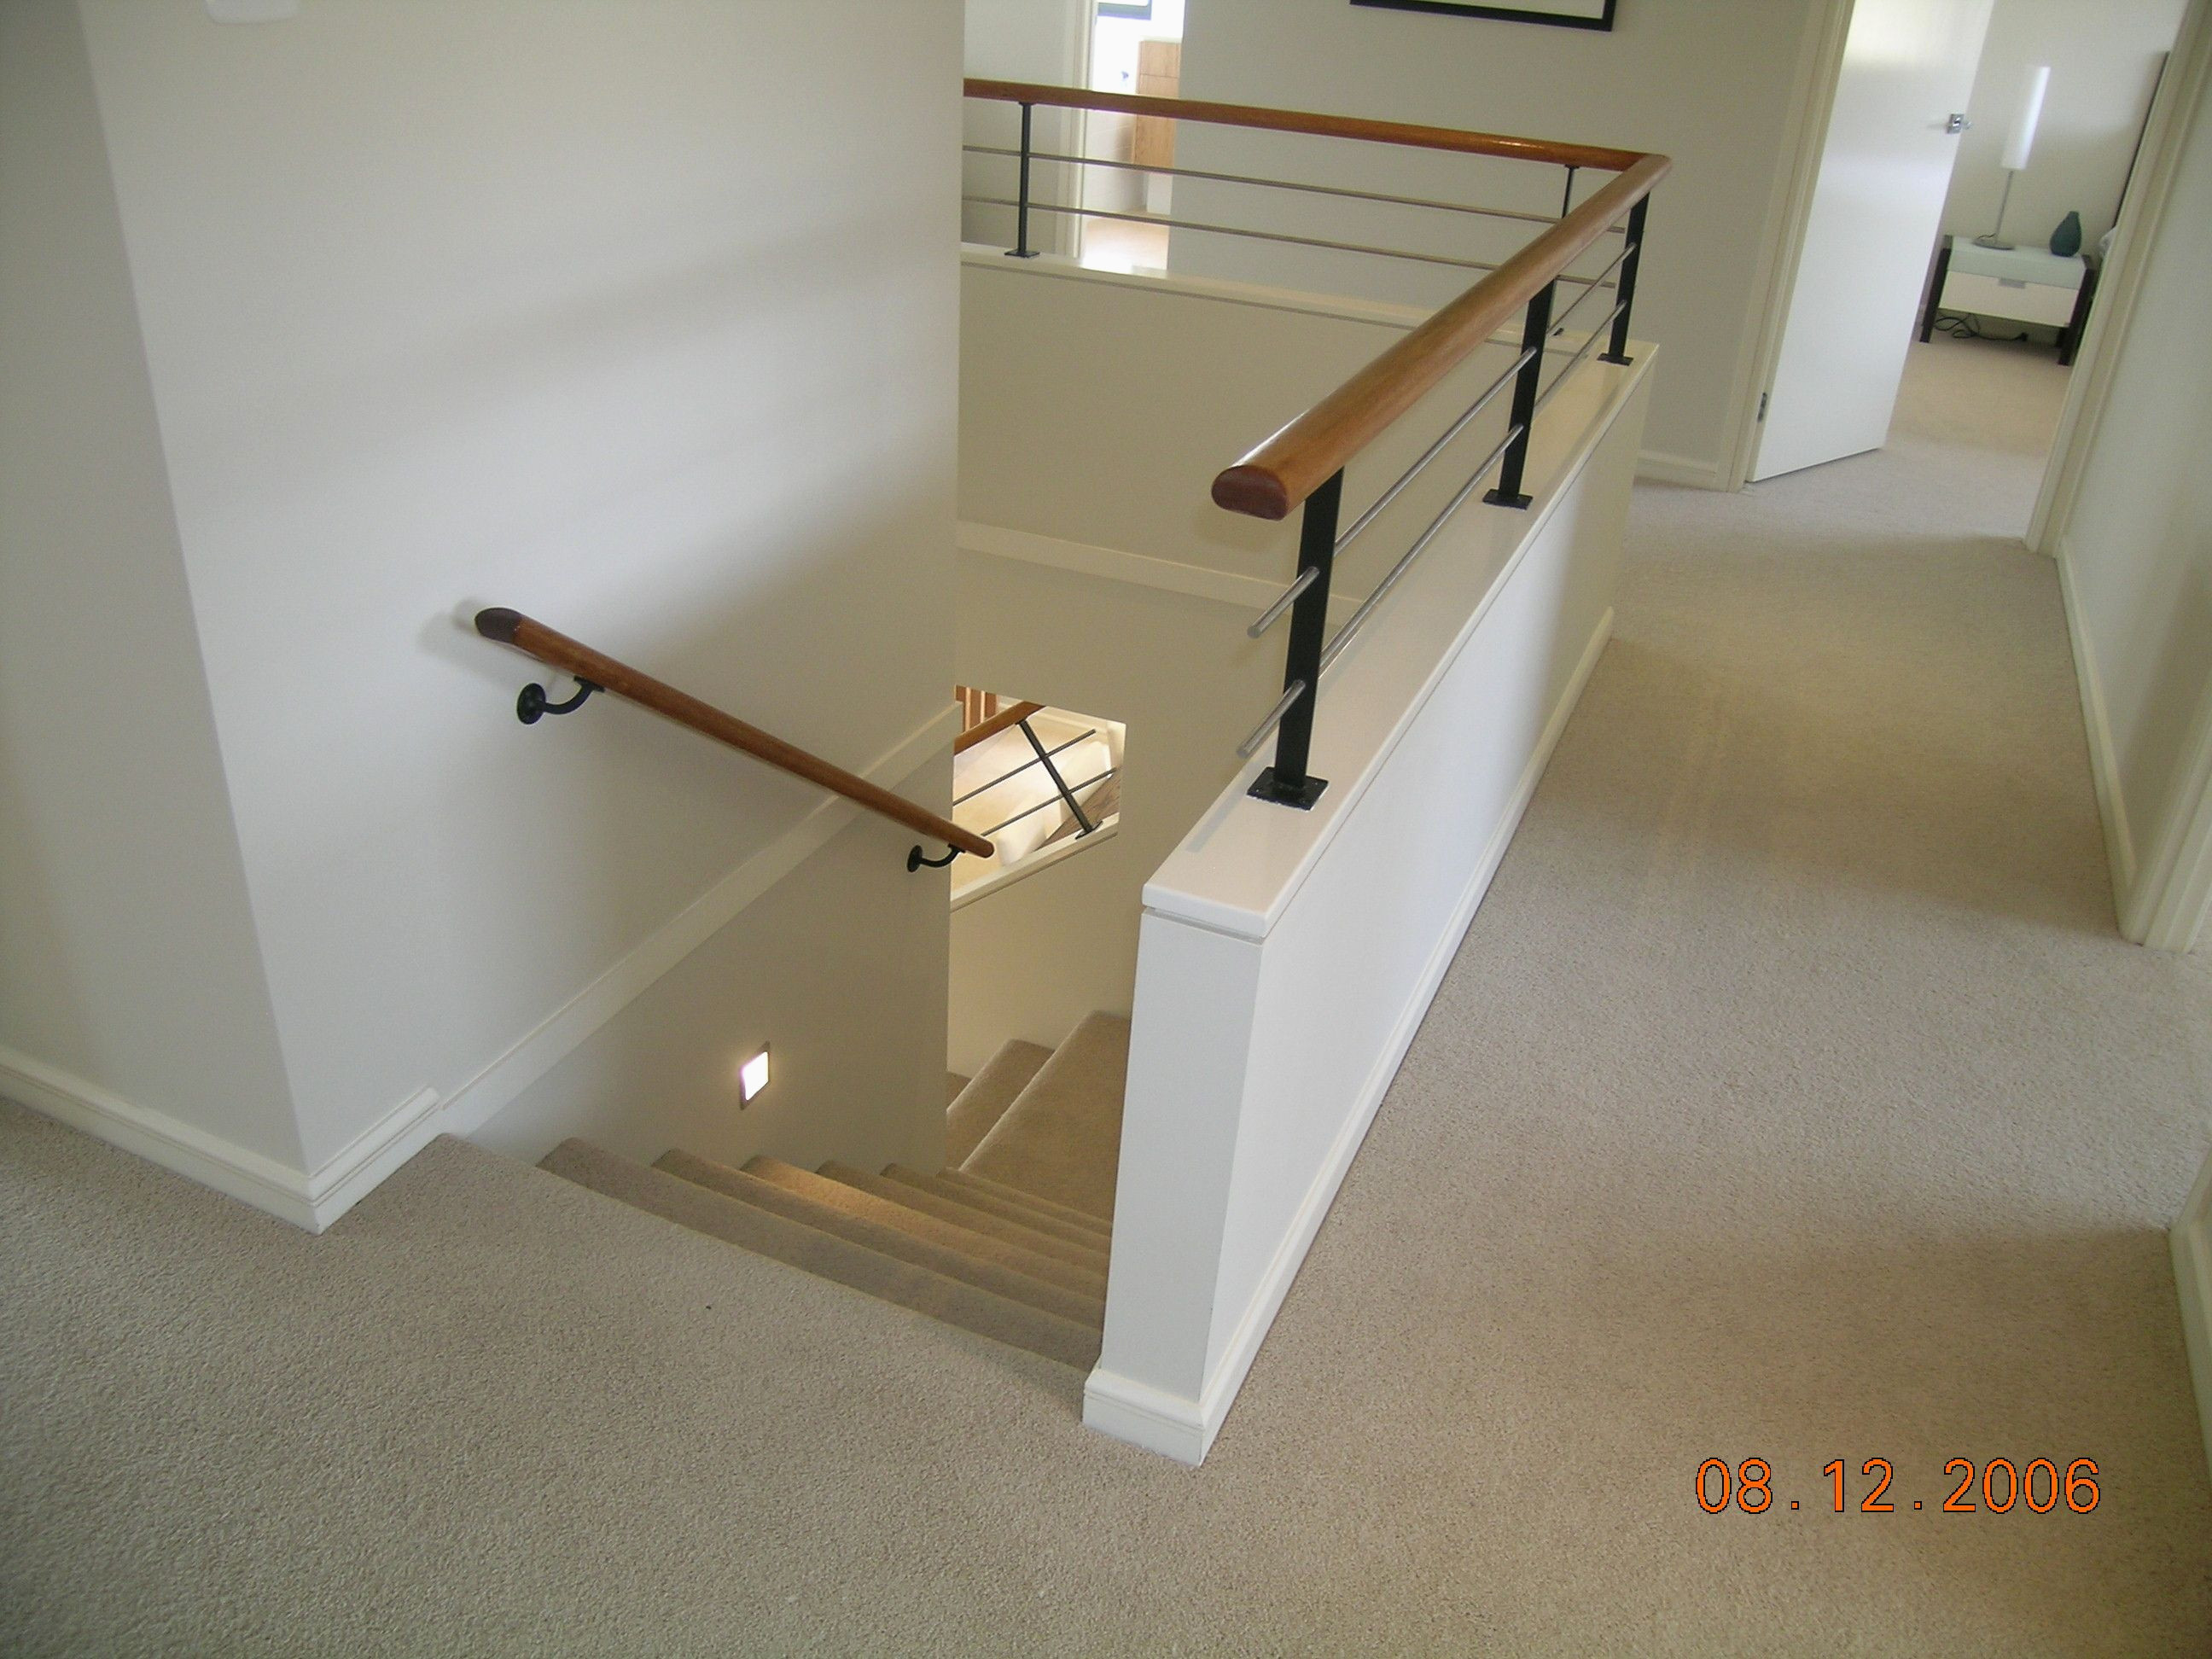 Cabine Peinture Ouverte Élégant Half Wall Timber Handrail Stainless Steel Rails and Black Powder Galerie